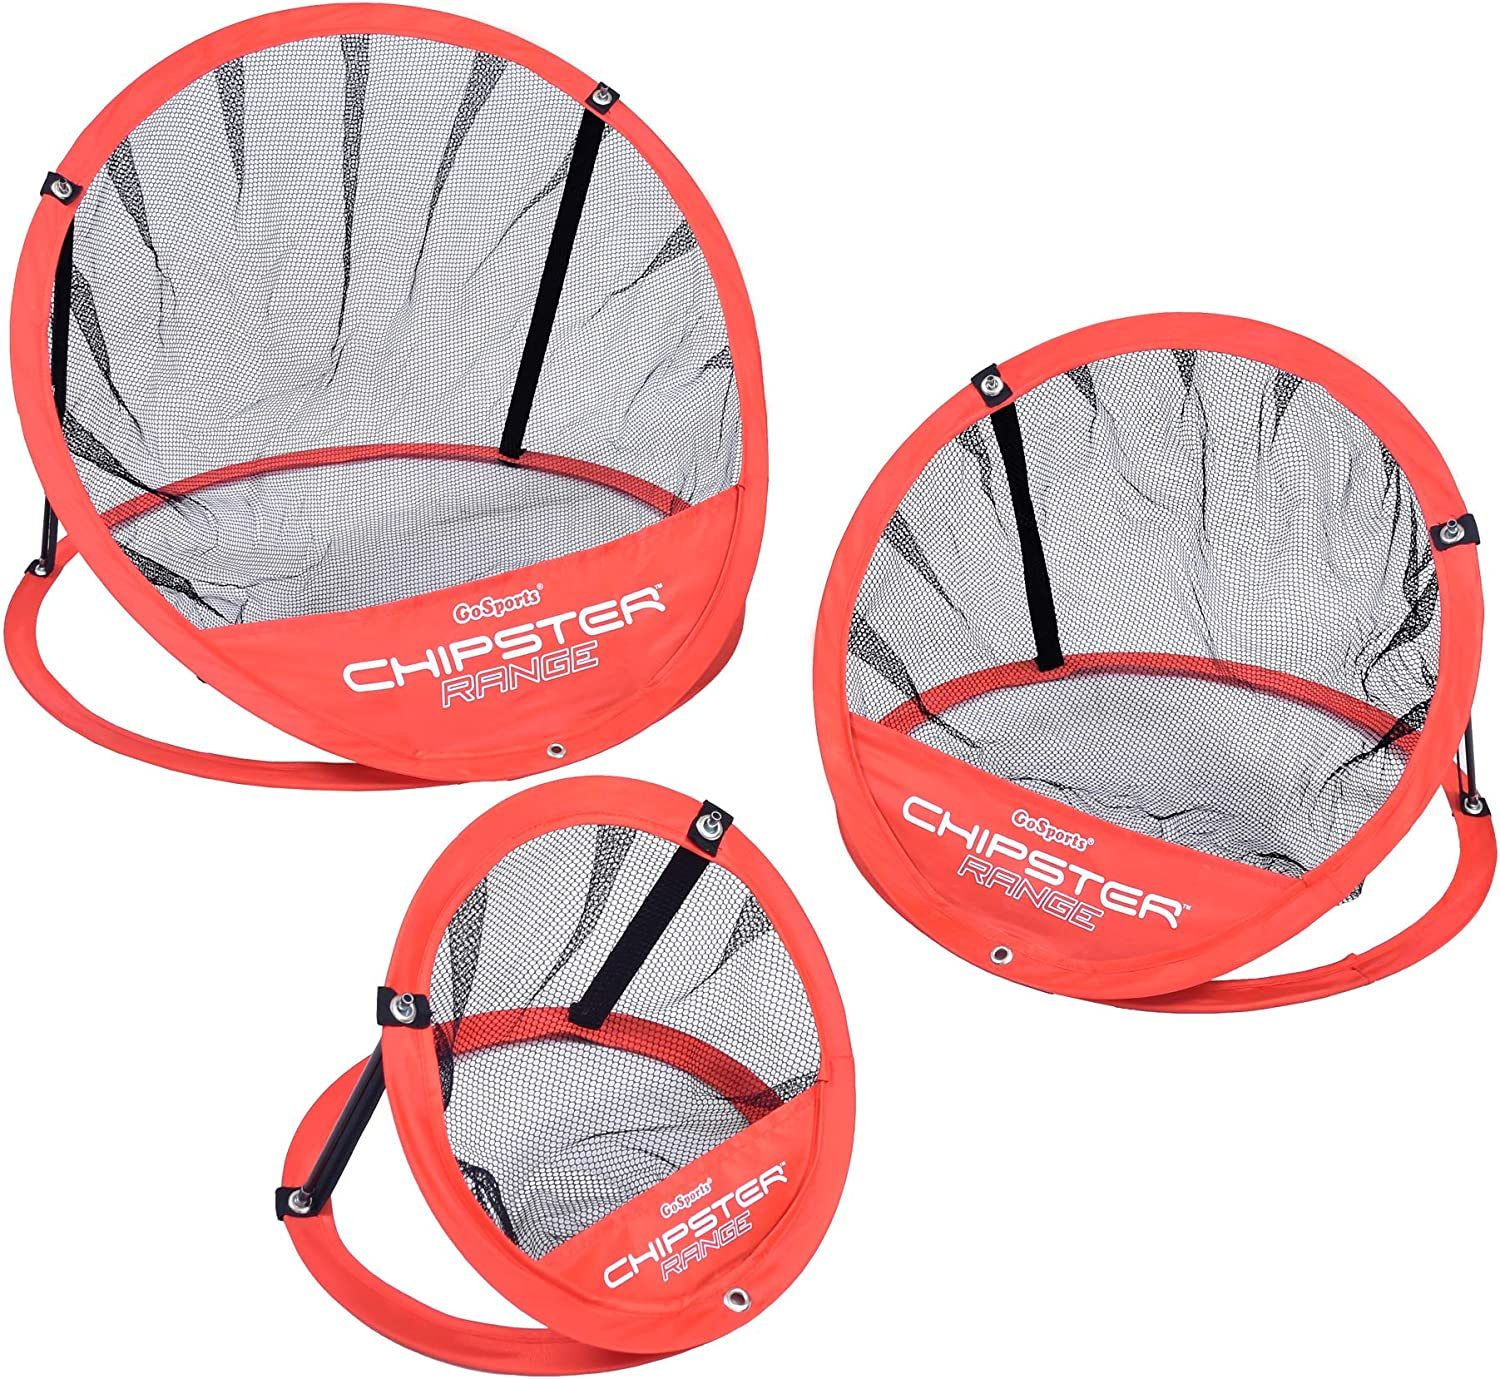 GoSports CHIPSTER Range - 3 Piece Golf Chipping Practice Net Target System with Carrying Case, Red : Sports & Outdoors